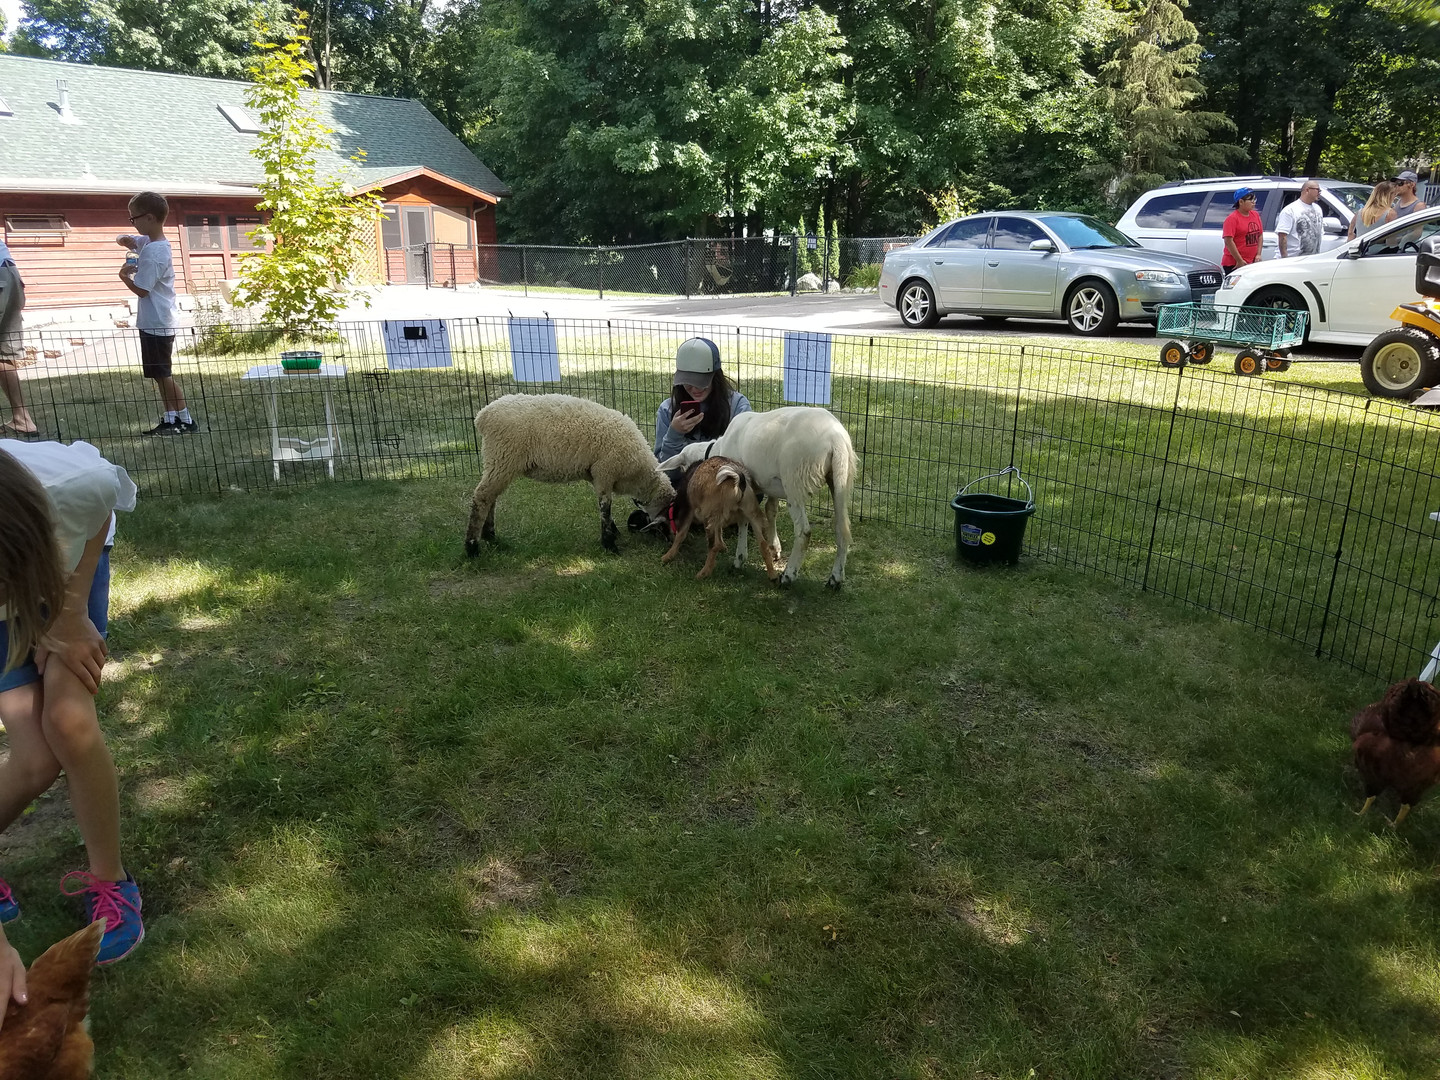 Our sweet sheep and goats are very curious and love to meet new people!